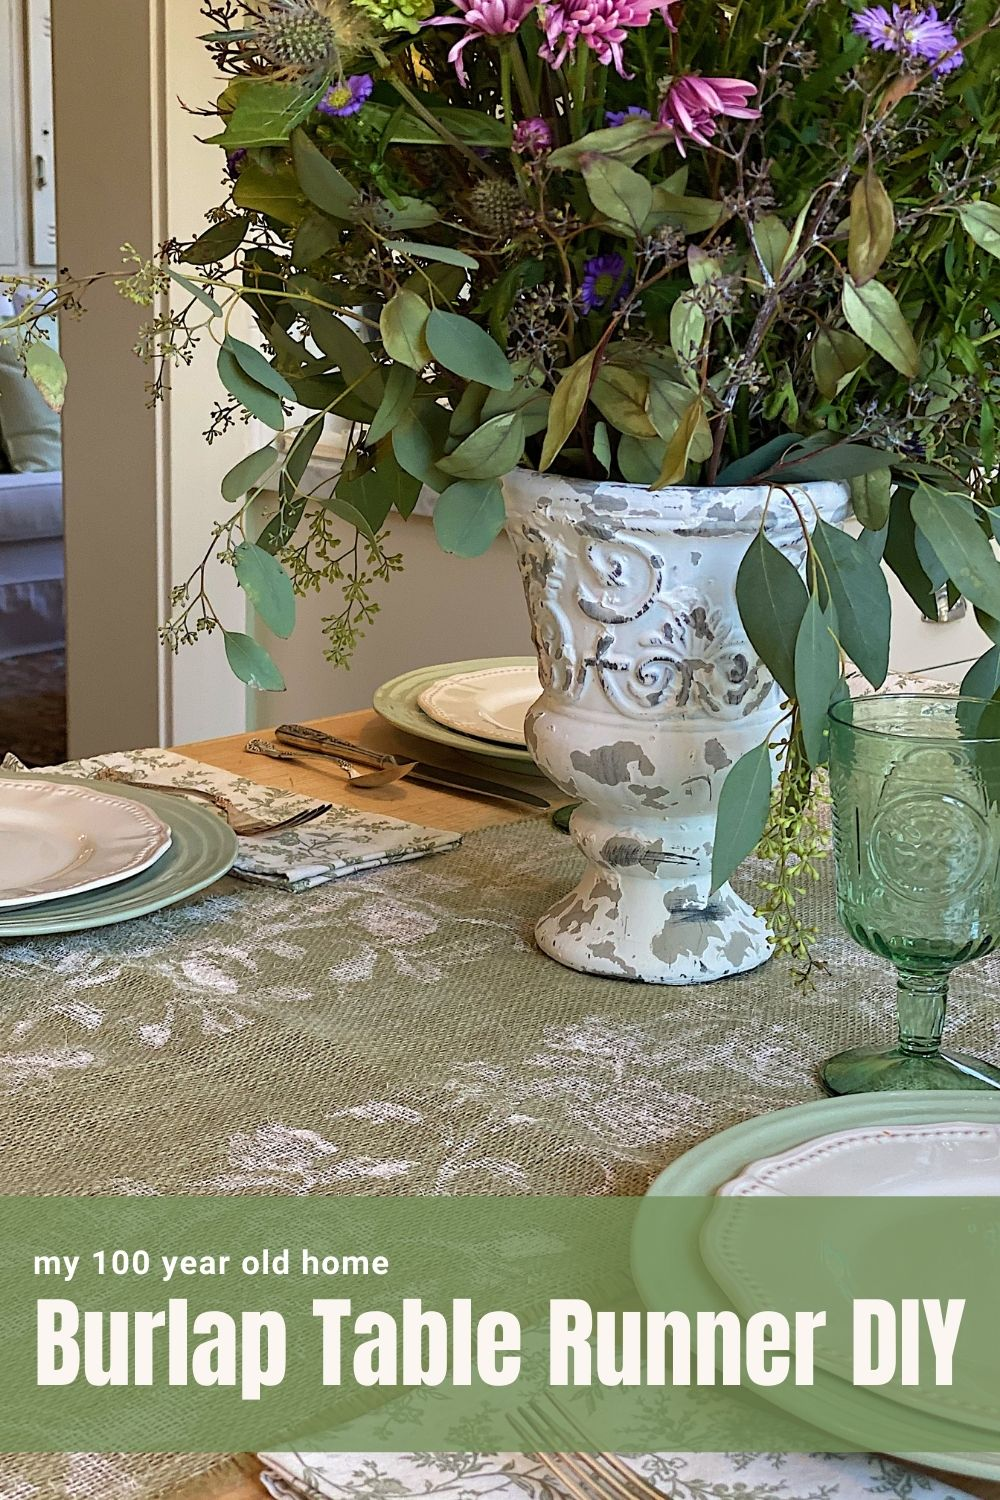 This easy DIY Burlap Table Runner can be made in less than an hour. I love this farmhouse burlap table runner style.